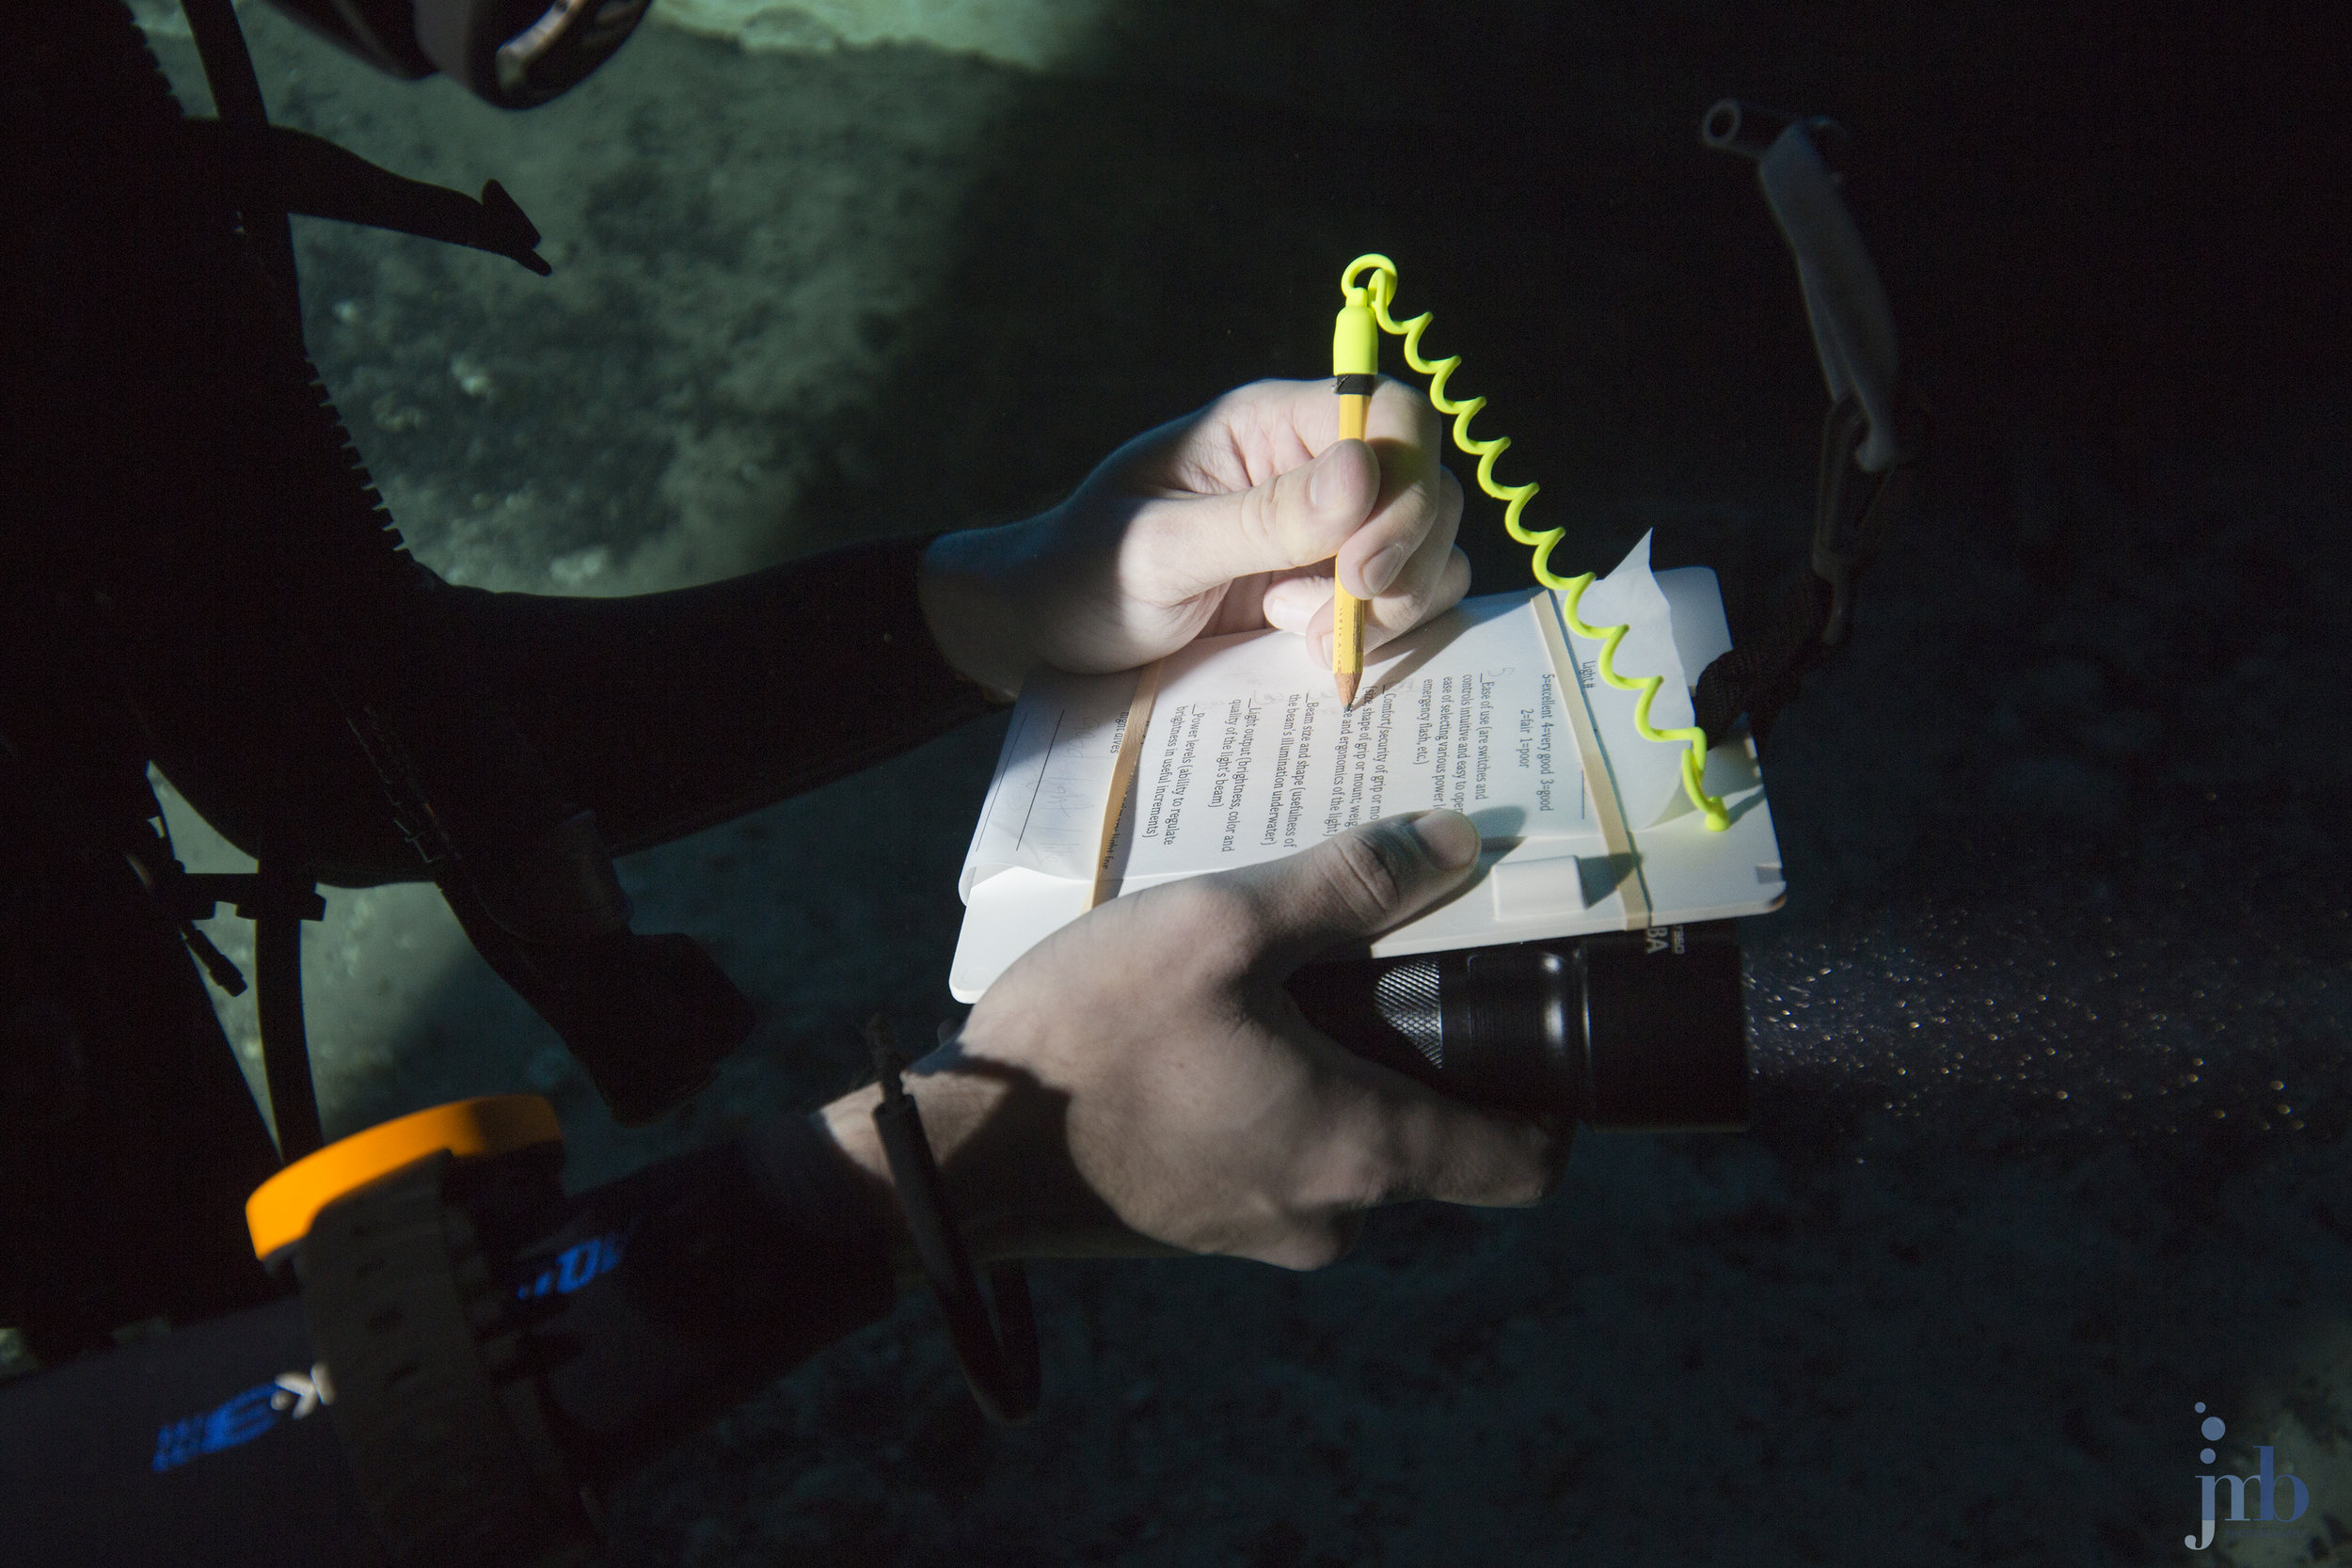 Scuba Diving Lights: Behind-the-Scenes